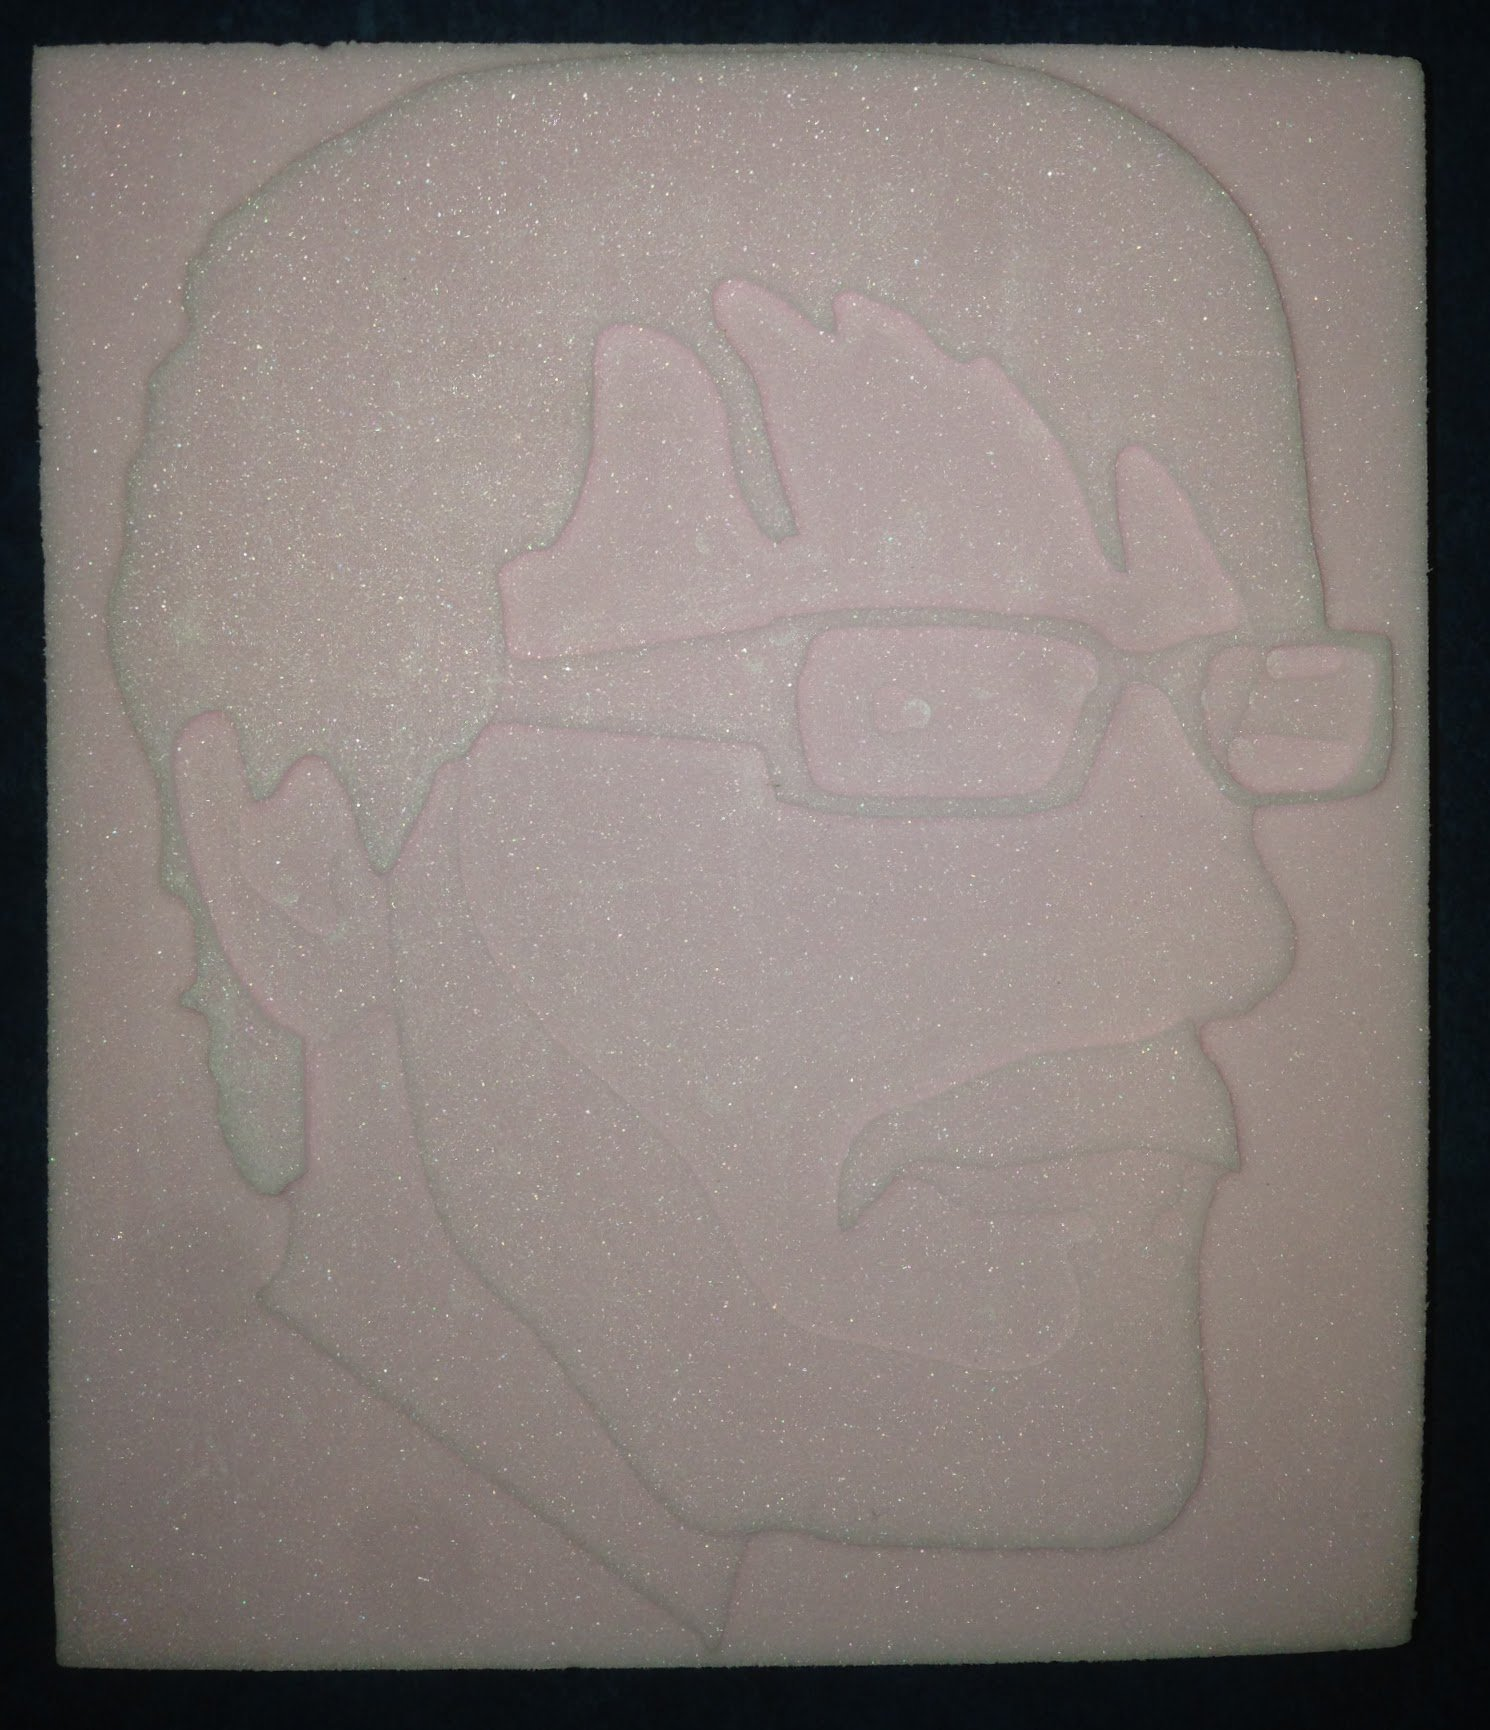 Portrait of a friend in xps foam